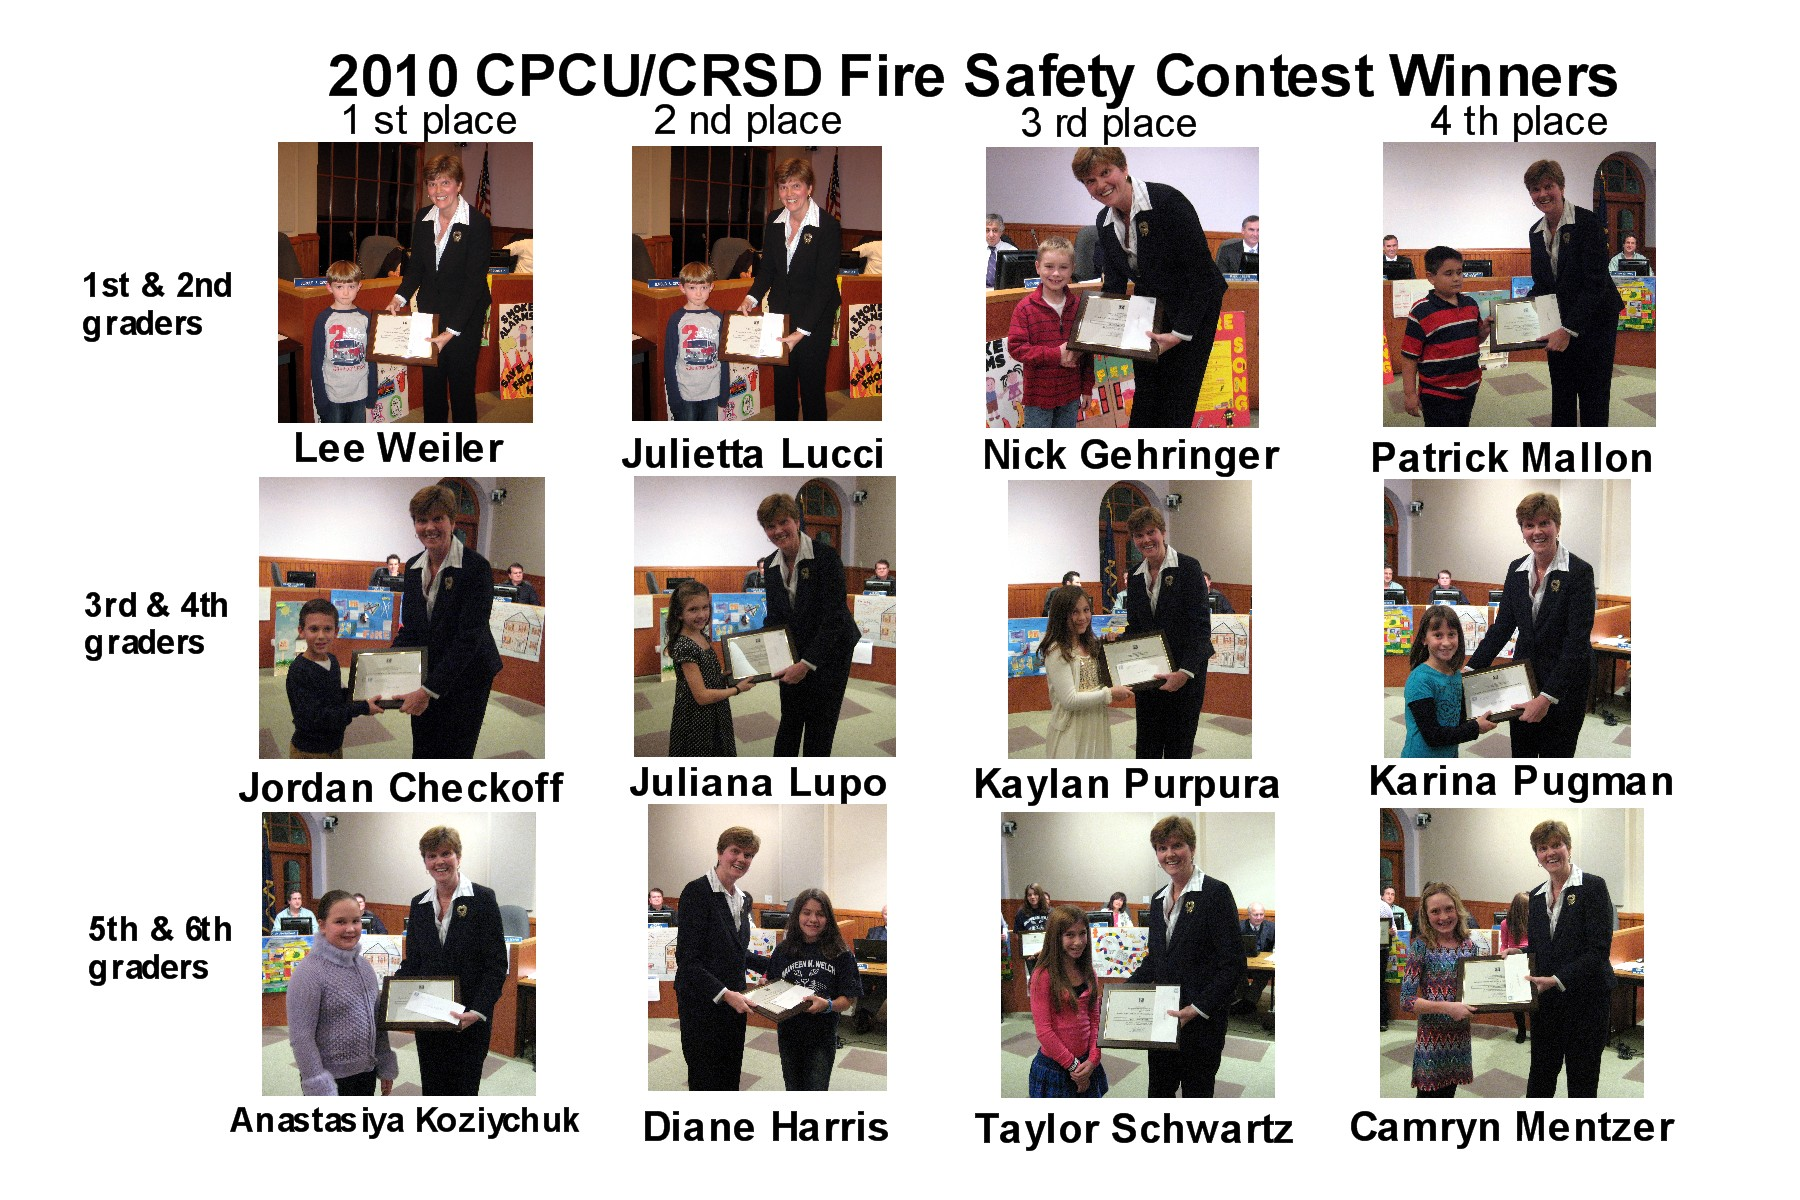 fire essay contest winners The first place winners from each school in the essay contest receive $25 with a grand prize of $100, while the coloring contest first place winners each receive a goody bag of fire related safety items with the grand prize winner receiving $50.